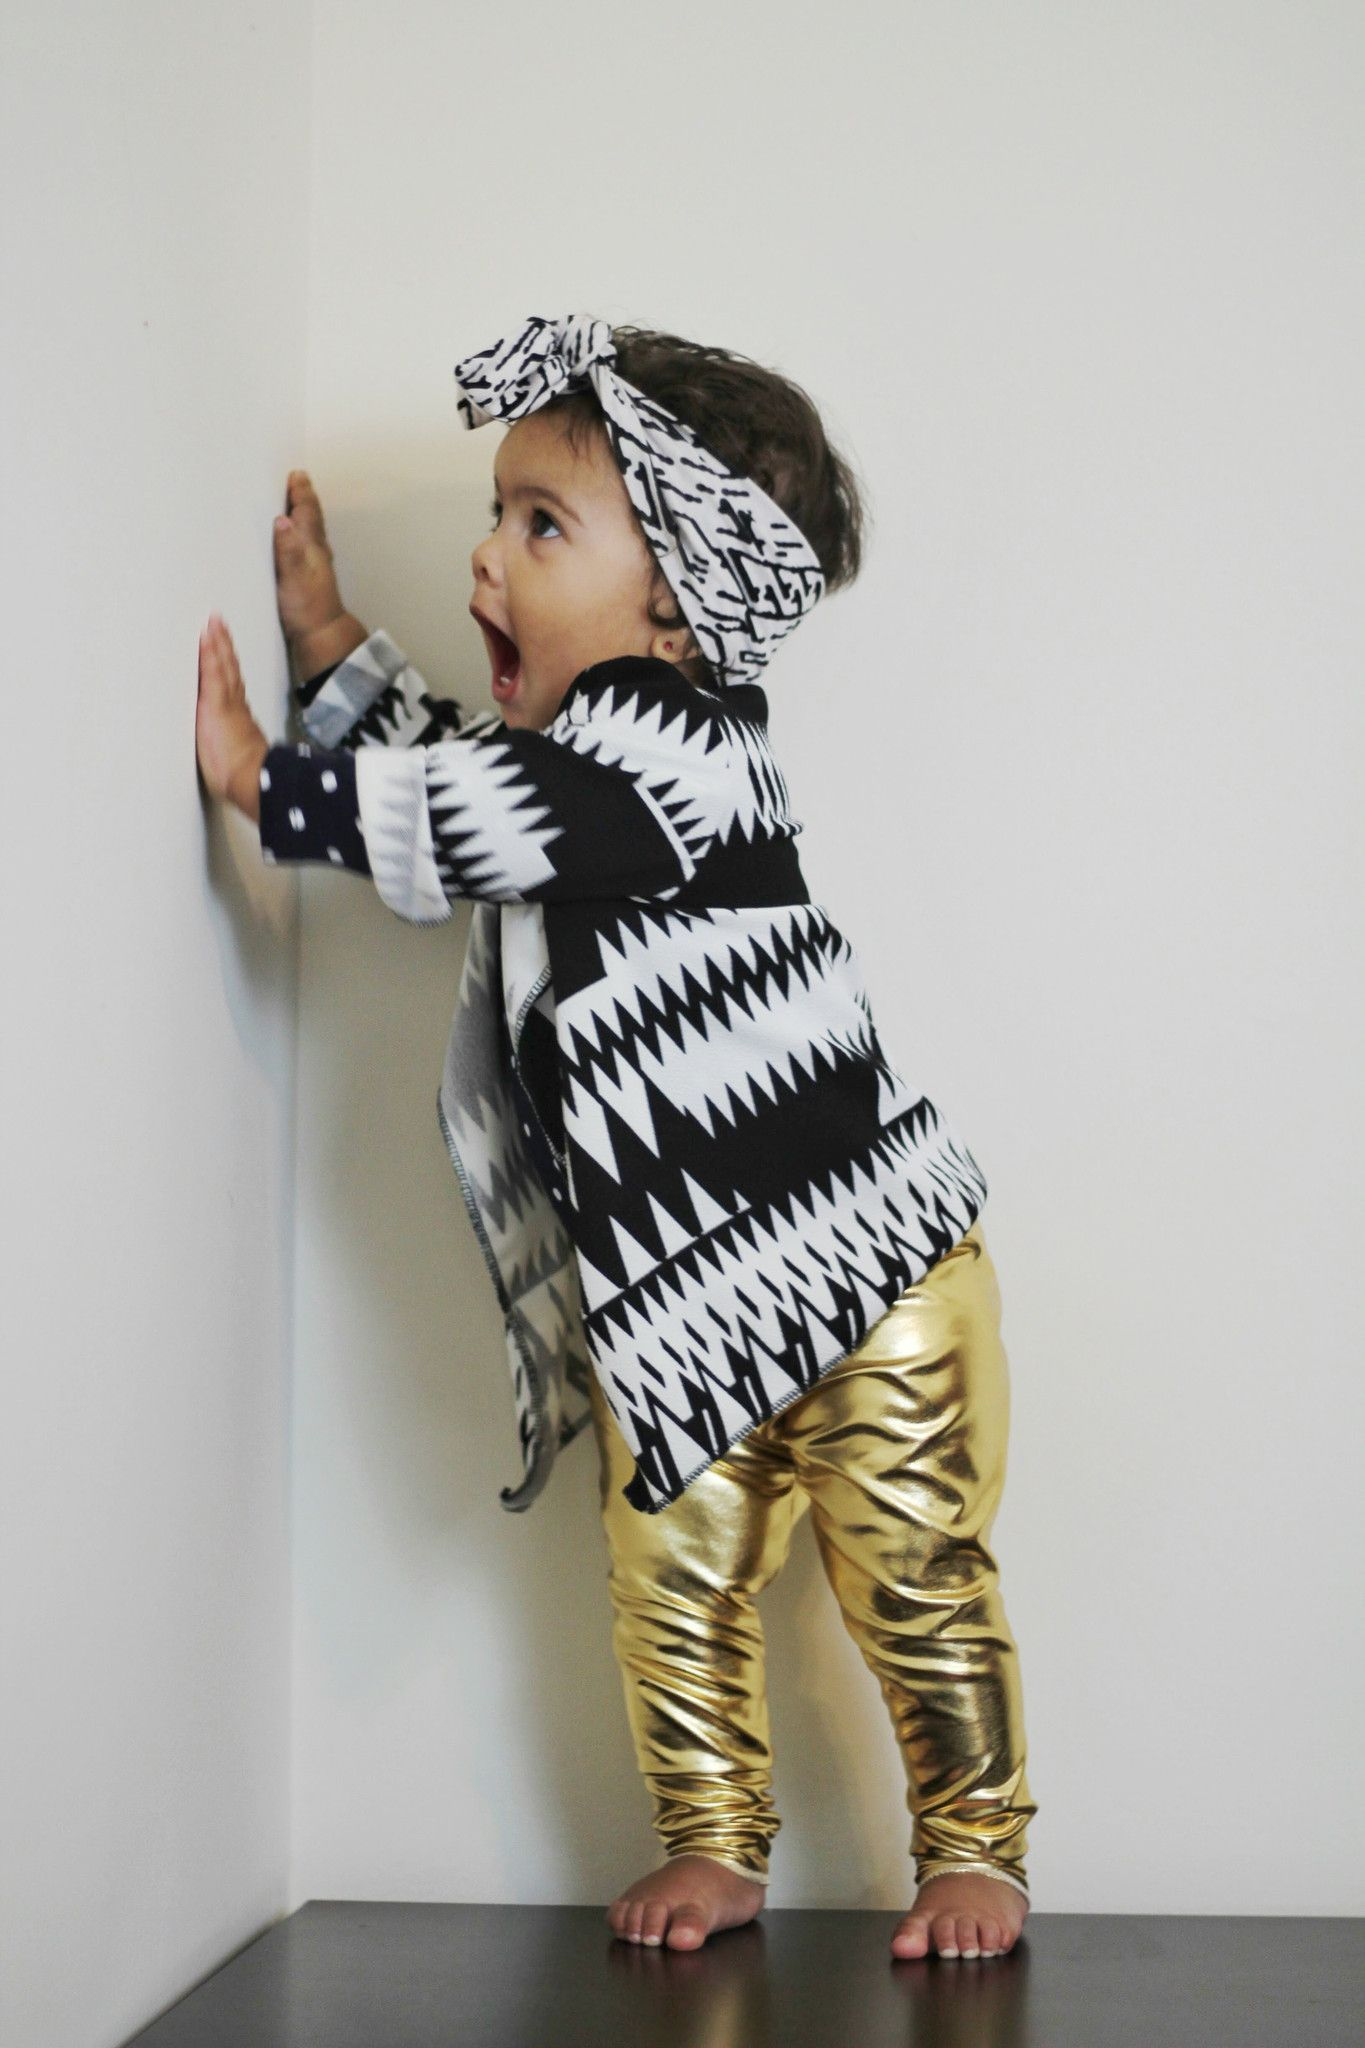 b837558842970 Metallic Gold Leggings for Toddlers A stunning baby outfit for your little  fashionista, these golden pants along with our Aztec inspired cardigan wrap  will ...